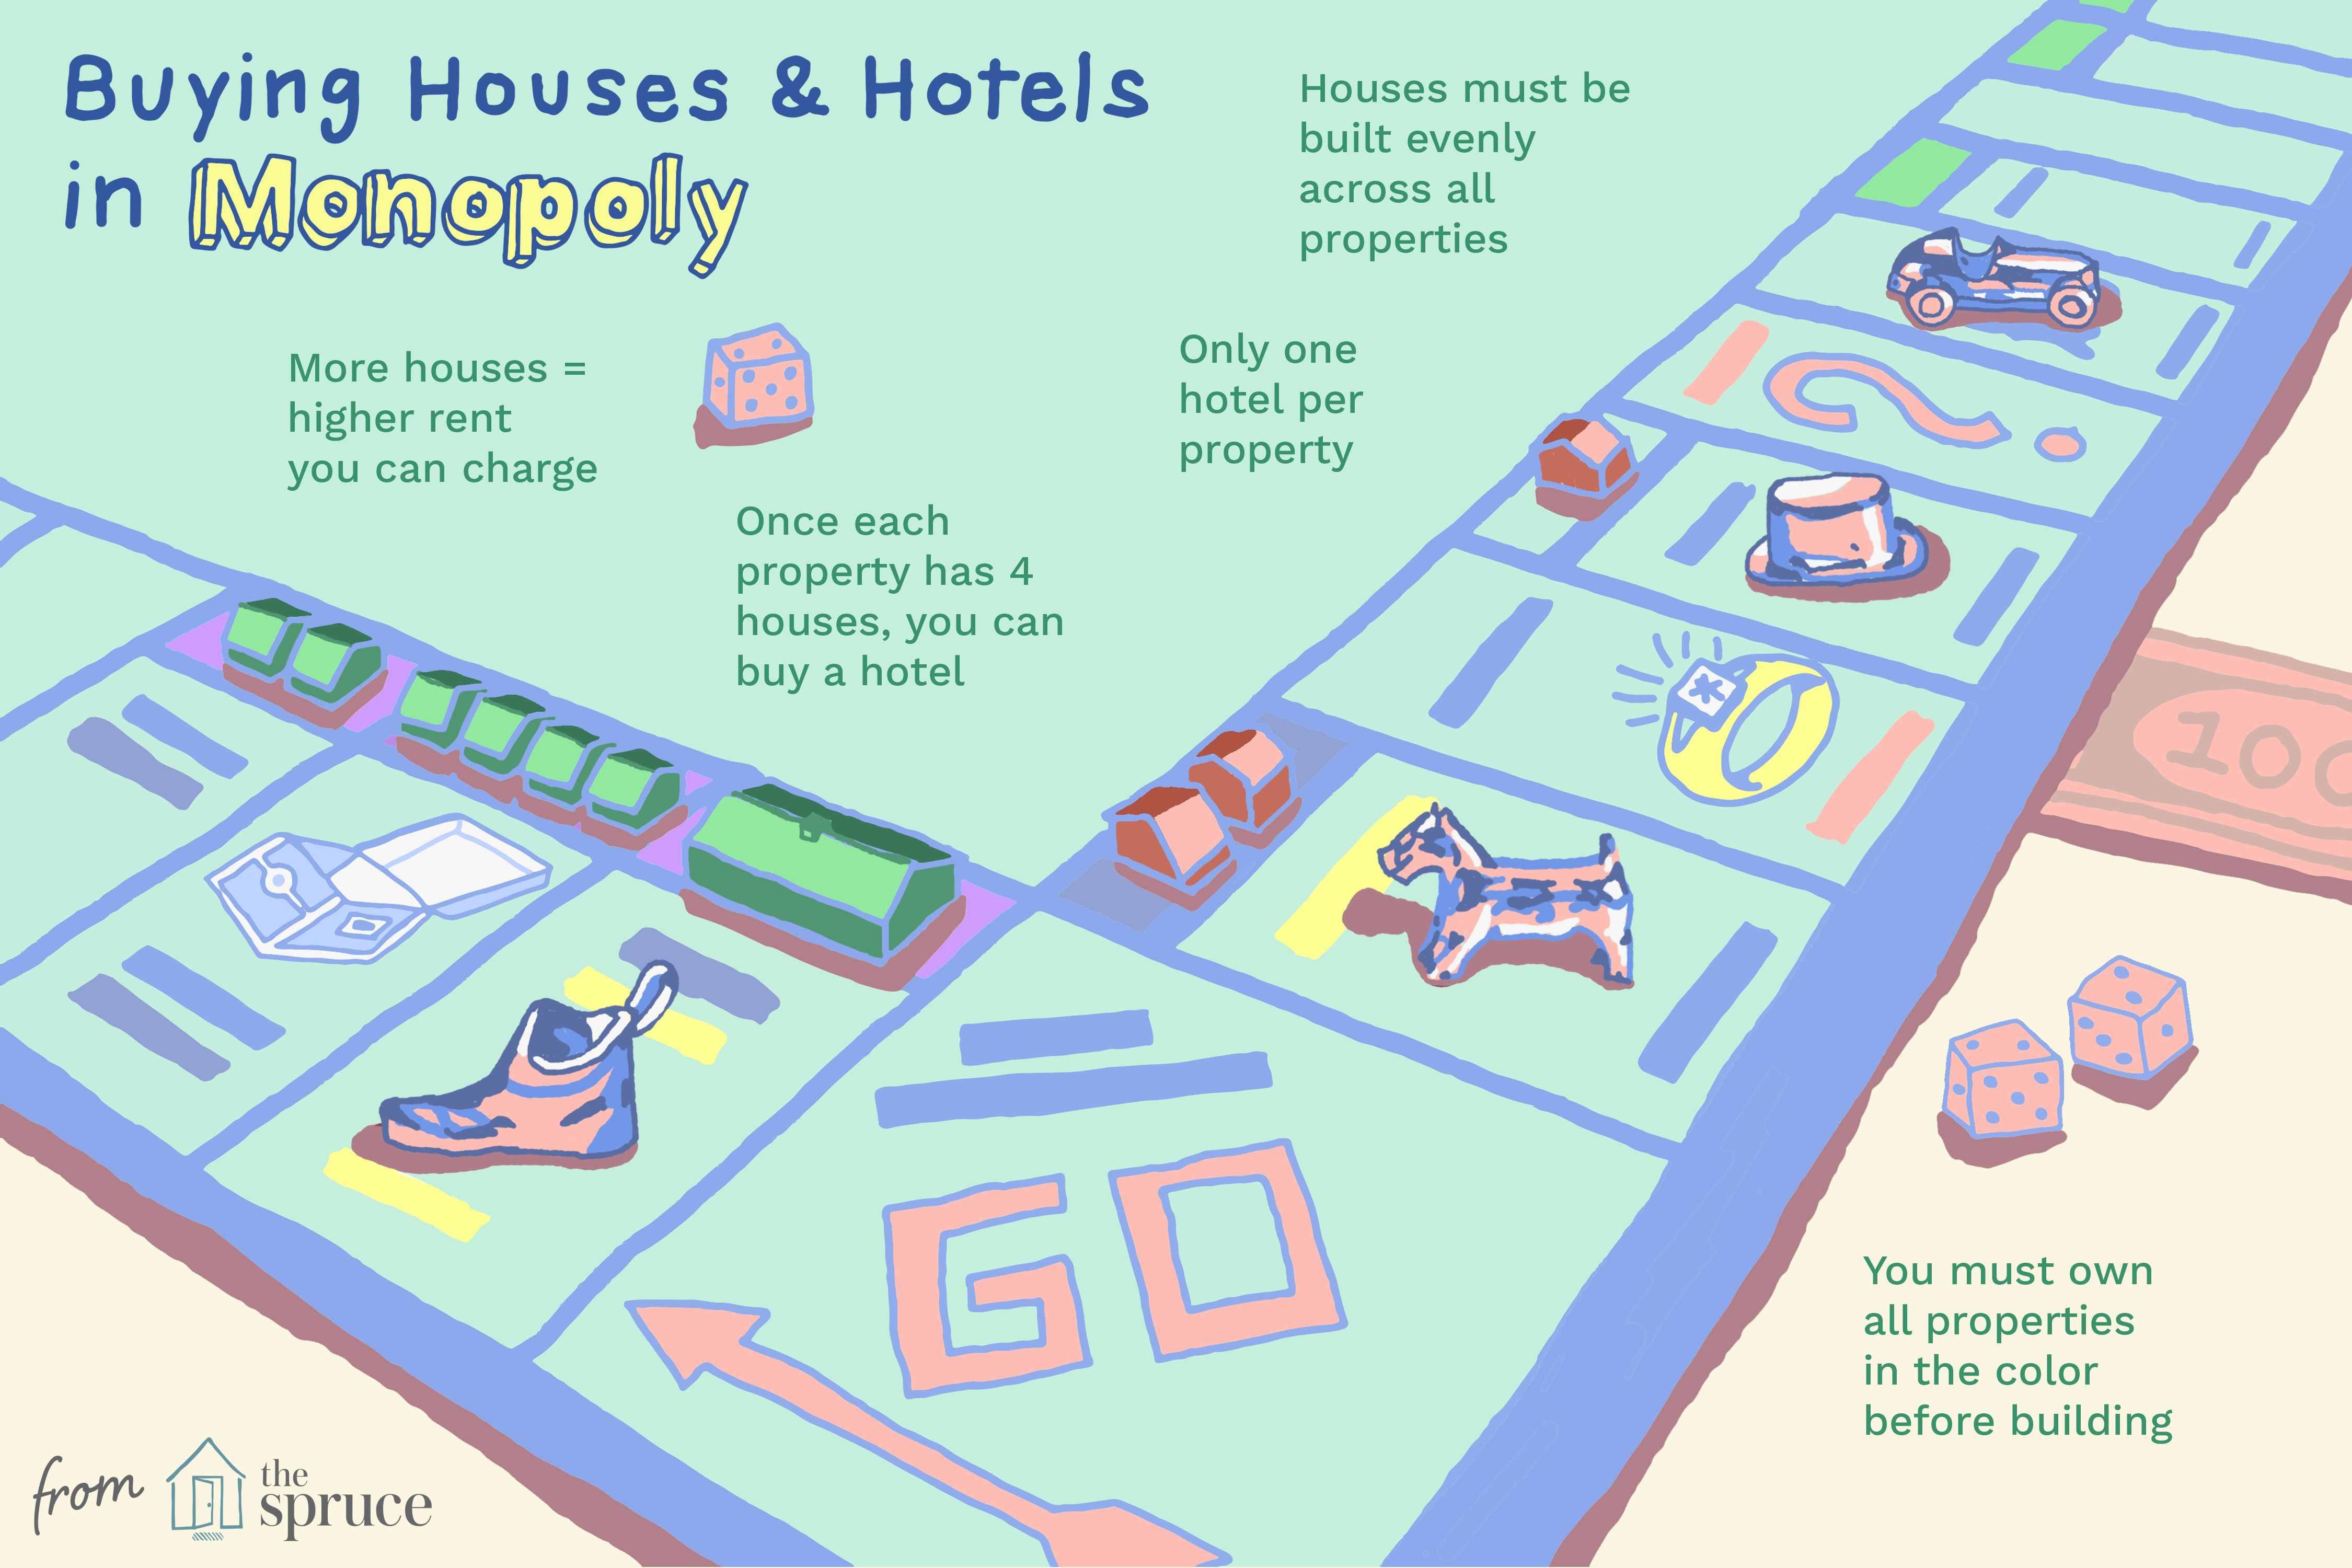 Illustration of how to buy houses and hotels in monopoly